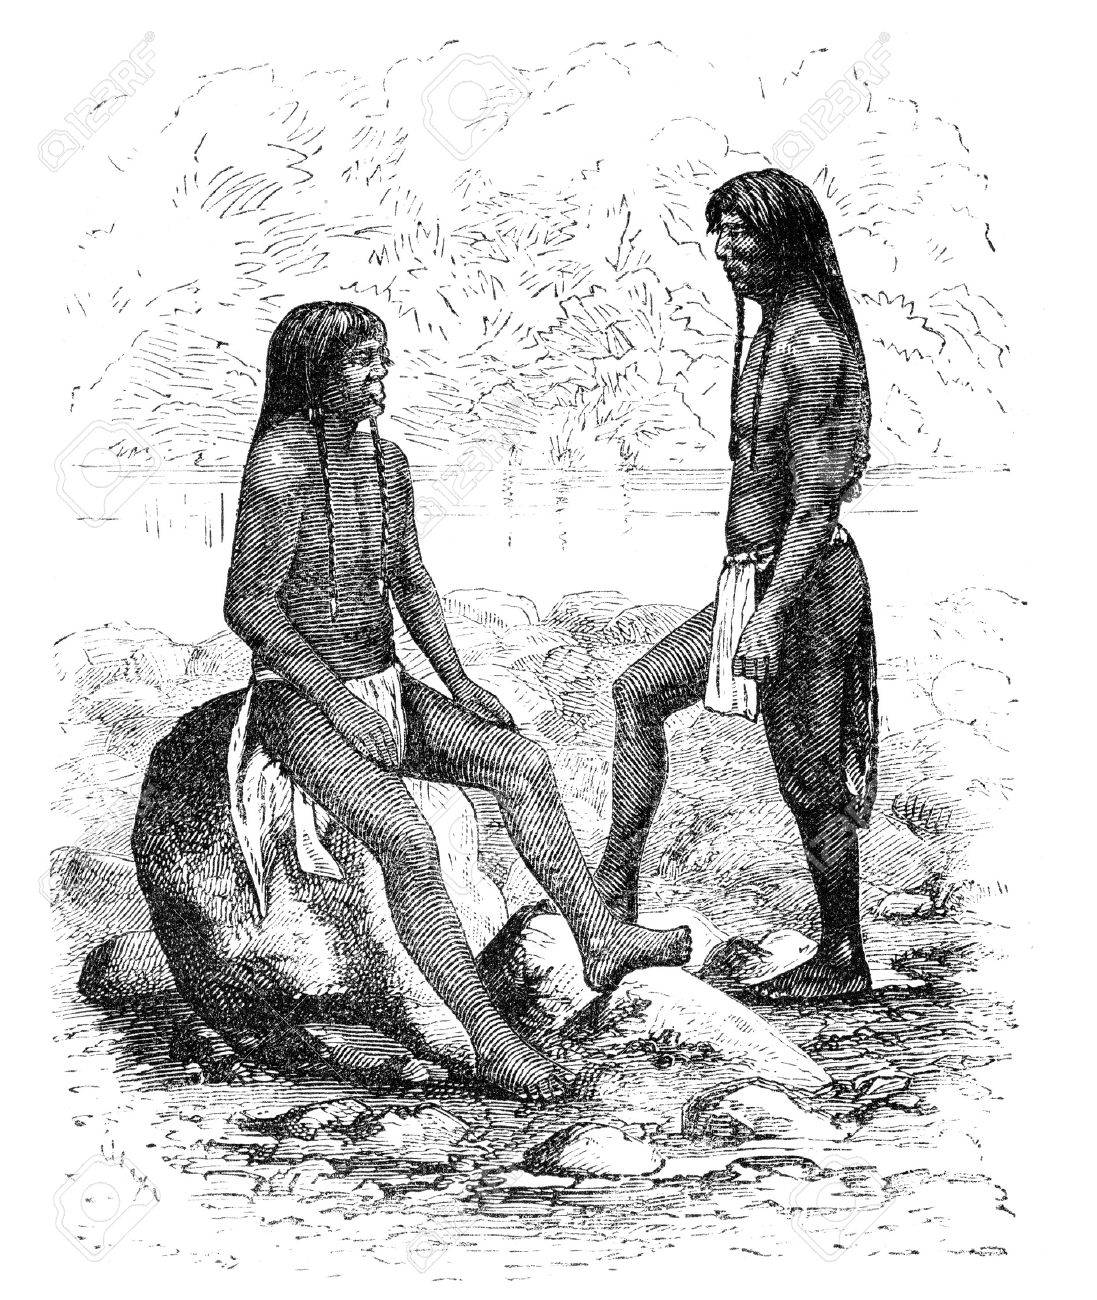 Navajo native americans in Arizona. Illustration originally published in Ernst von Hesse-Wartegg's